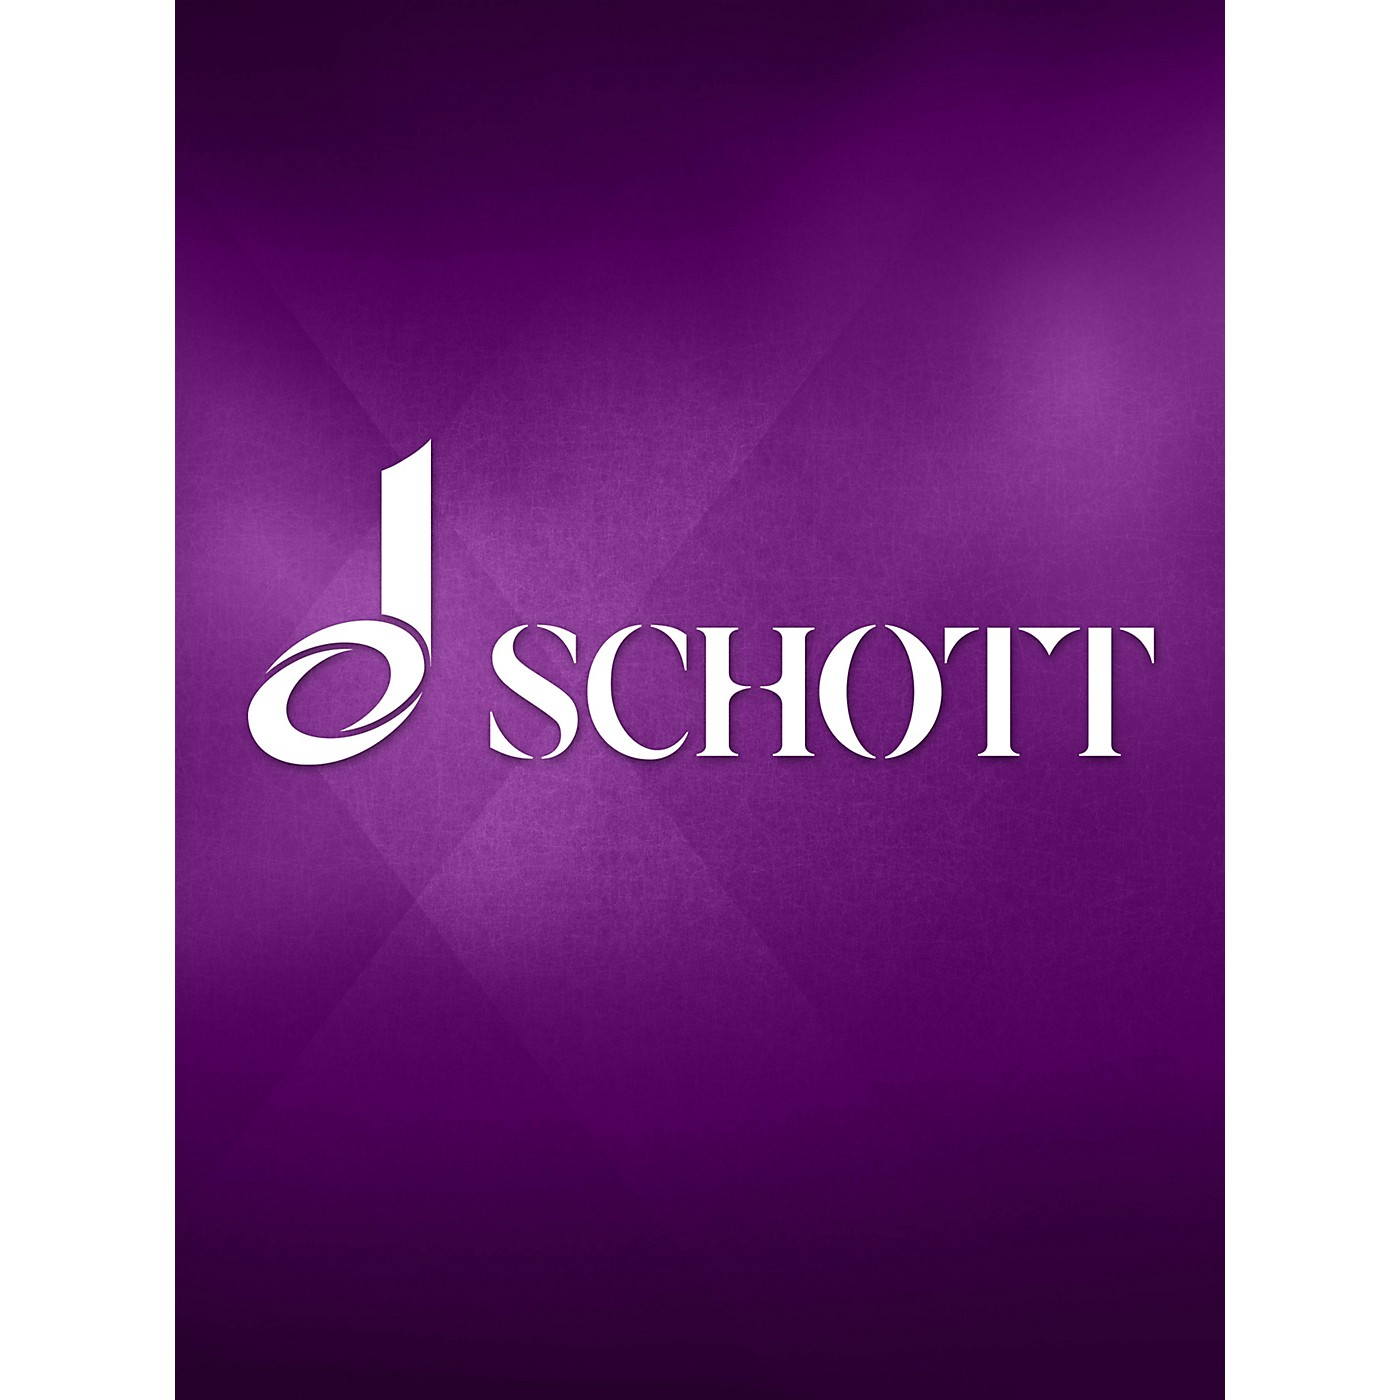 Schott Erfreut euch alle am Chorgesang! (SATB, SSA or TTBB and piano) Composed by Heinz Wilbert thumbnail